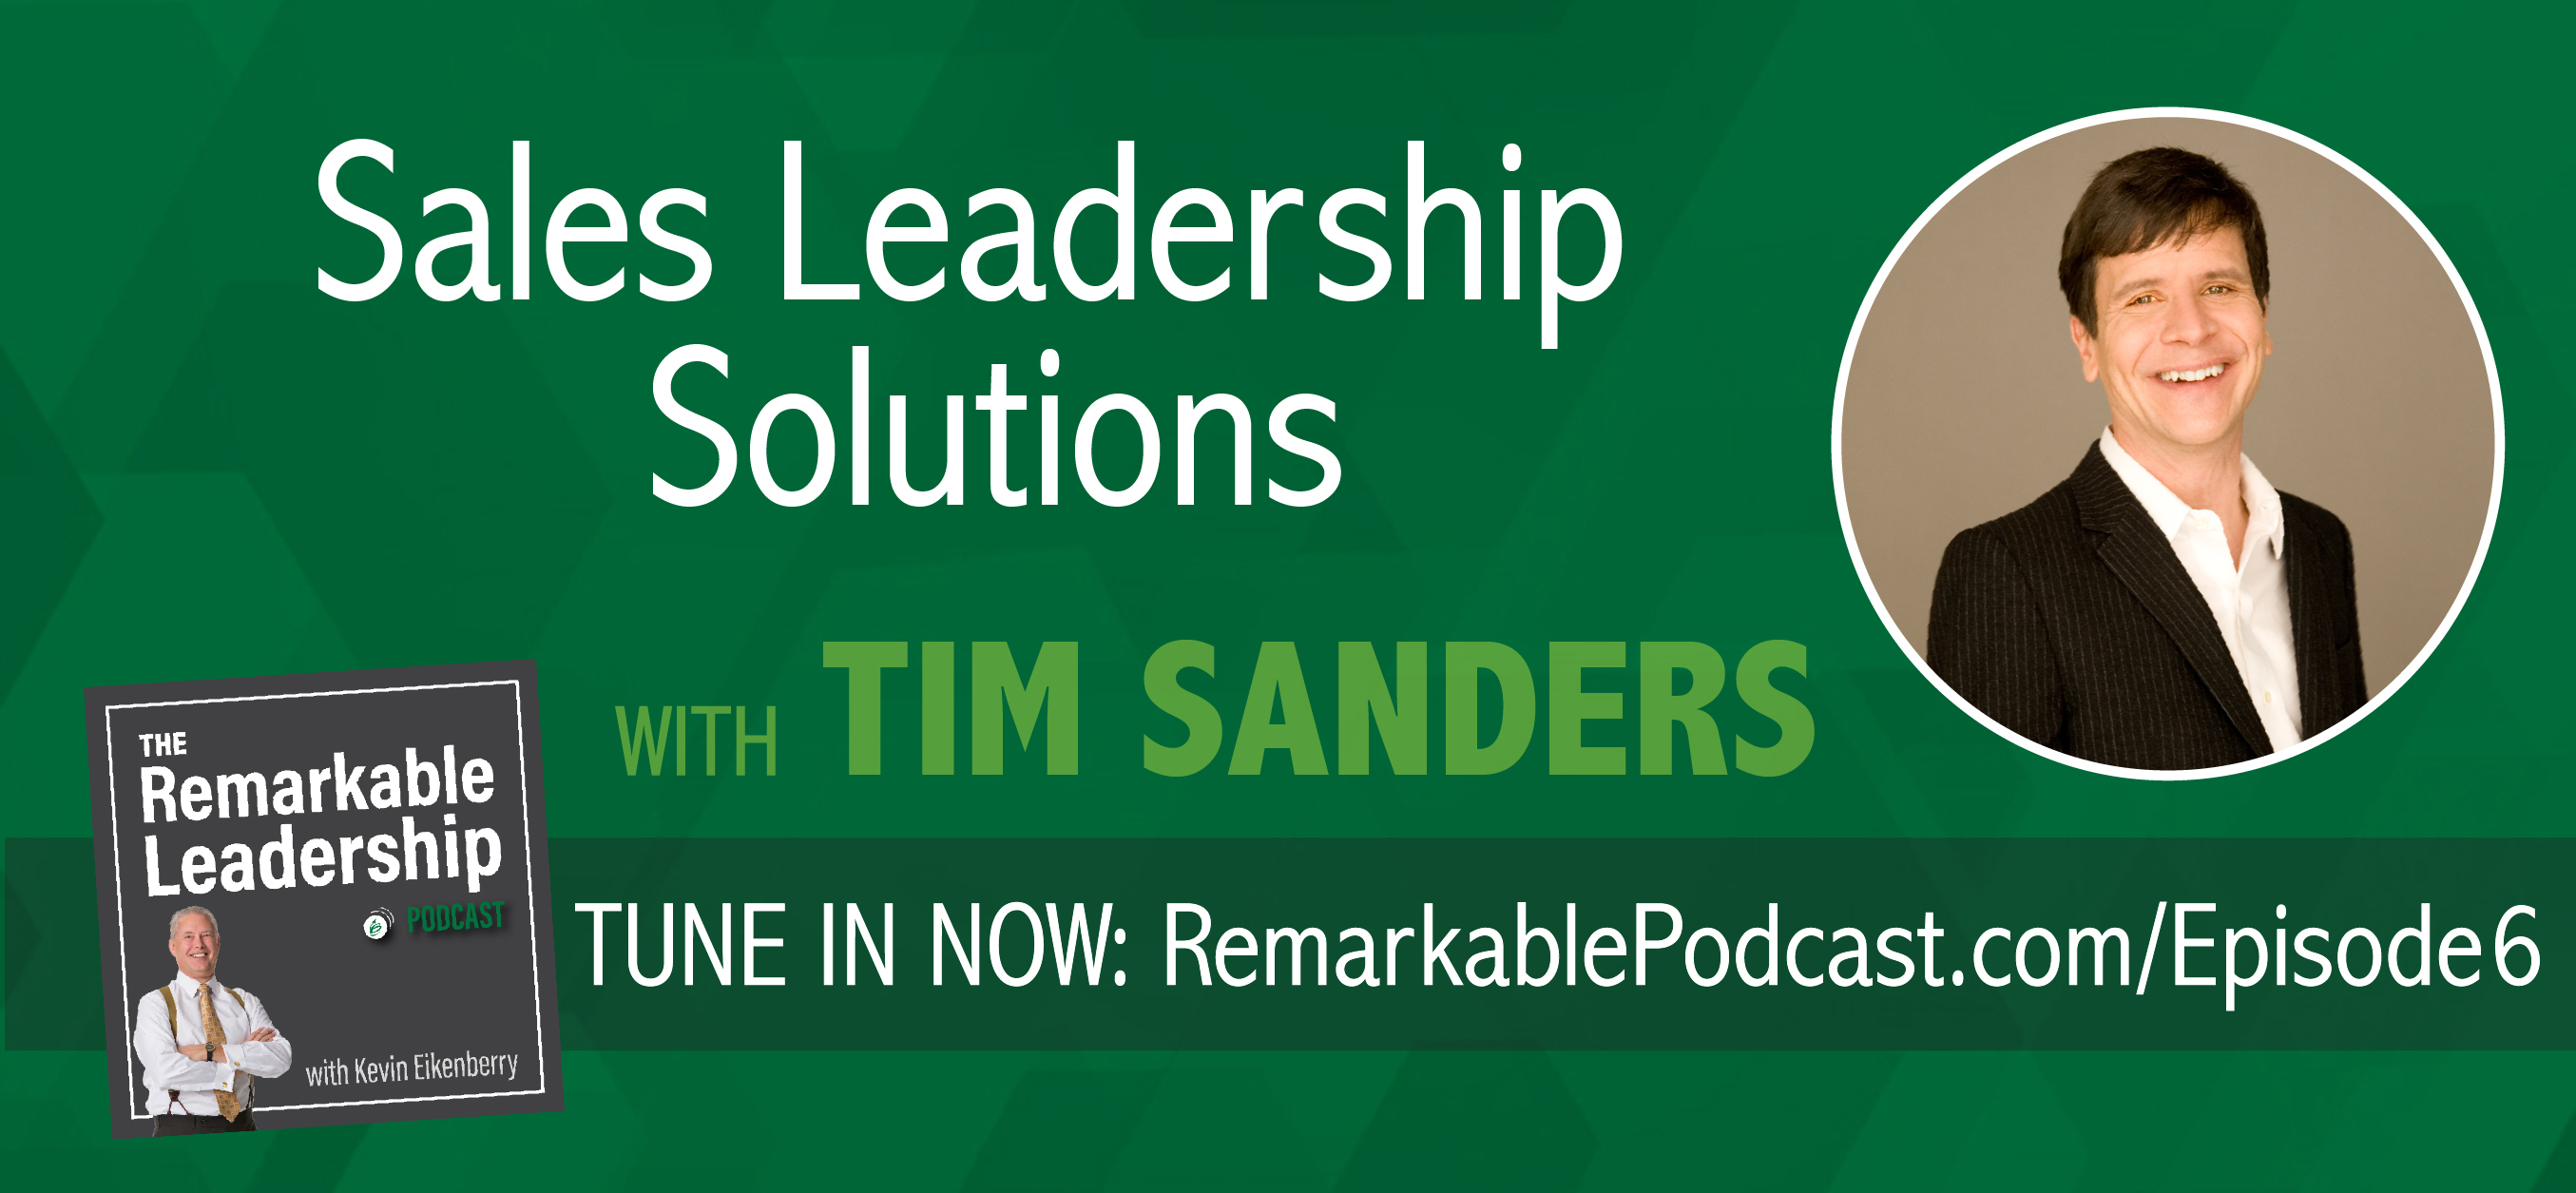 The Remarkable Leadership Podcast - Episode 6: Sales Leadership Solutions with Tim Sanders